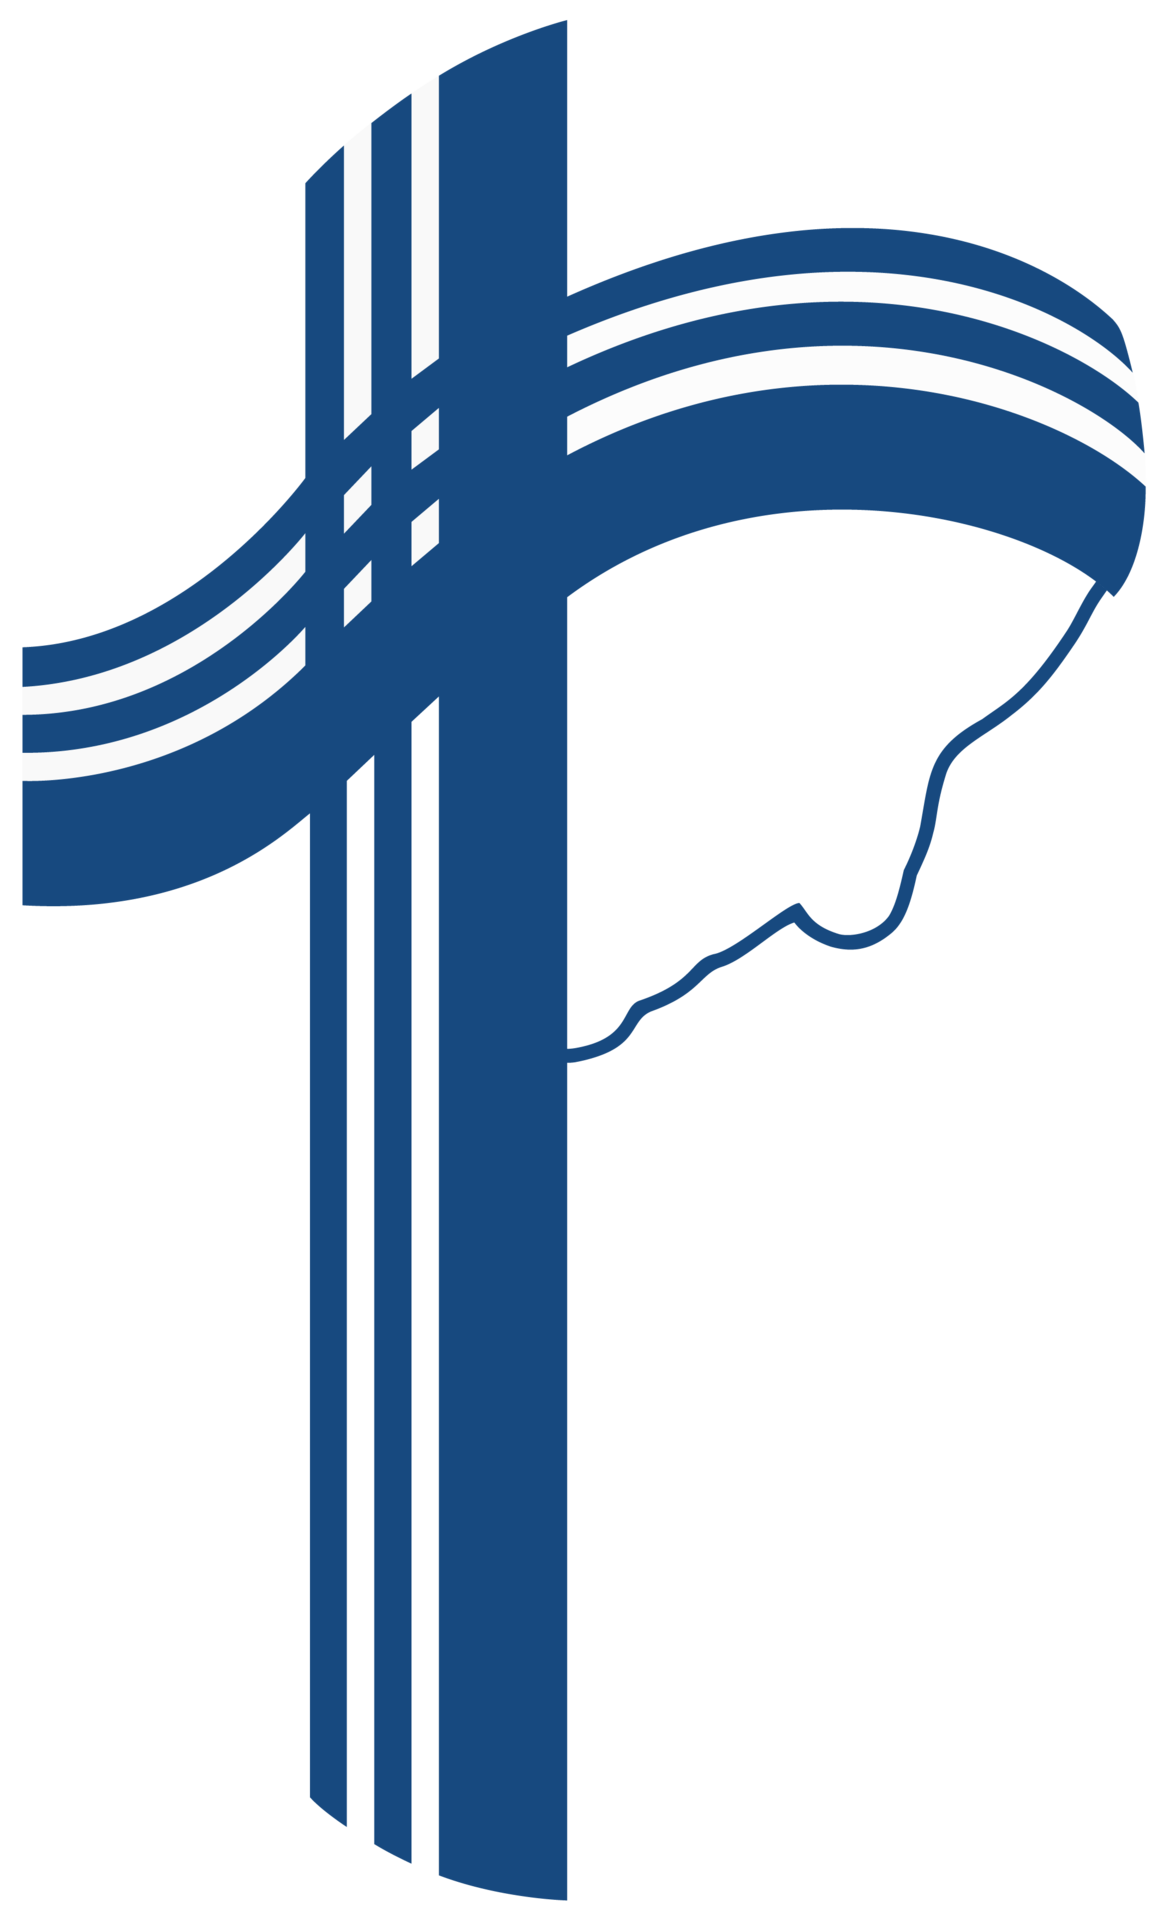 St. Teresa Catholic Outreach School (Gr.8 - Gr.12) logo